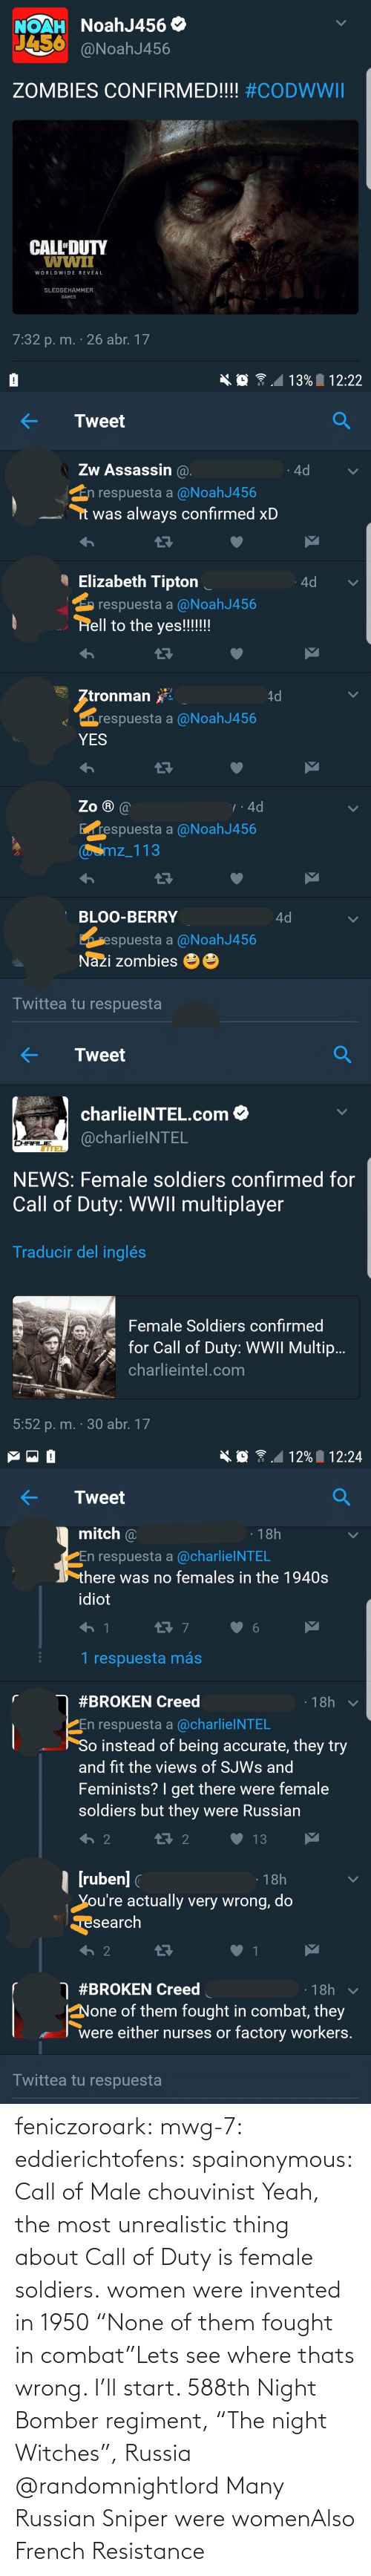 "Charlie, News, and Soldiers: NoahJ456 O  NOAH  J456  @NoahJ456  ZOMBIES CONFIRMED!!!! #CODWWII  CALL'DUTY  wwiI  WORLDWIDE REVEAL  SLEDGEHAMMER  GAMES  7:32 p. m. · 26 abr. 17   13% 12:22  Tweet  Zw Assassin @.  4d  En respuesta a @NoahJ456  it was always confirmed xD  I Elizabeth Tipton  4d  E respuesta a @NoahJ456  Hell to the yes!!!!!!  Ztronman  4d  n respuesta a @NoahJ456  YES  Zo ® @  7:4d  Erespuesta a @NoahJ456  Caamz_113  BLOO-BERRY  4d  respuesta a @NoahJ456  Nazi zombies  Twittea tu respuesta   Tweet  charlielNTEL.com O  @charlielNTEL  CHARLIE  ITTEL  NEWS: Female soldiers confirmed for  Call of Duty: WWII multiplayer  Traducir del inglés  Female Soldiers confirmed  for Call of Duty: WWII Multip..  charlieintel.com  5:52 p. m. · 30 abr. 17   12% I 12:24  Tweet  mitch @  · 18h  PEn respuesta a @charlielNTEL  there was no females in the 1940s  idiot  1 respuesta más  · 18h  #BROKEN Creed  En respuesta a @charlielNTEL  So instead of being accurate, they try  and fit the views of SJWS and  Feminists? I get there were female  soldiers but they were Russian  t7 2  13  | (ruben] (  You're actually very wrong, do  ·18h  Tesearch  2  O #BROKEN Creed  · 18h  None of them fought in combat, they  were either nurses or factory workers.  Twittea tu respuesta feniczoroark:  mwg-7:  eddierichtofens:   spainonymous: Call of Male chouvinist Yeah, the most unrealistic thing about Call of Duty is female soldiers.   women were invented in 1950    ""None of them fought in combat""Lets see where thats wrong. I'll start. 588th Night Bomber regiment, ""The night Witches"", Russia @randomnightlord    Many Russian Sniper were womenAlso French Resistance"